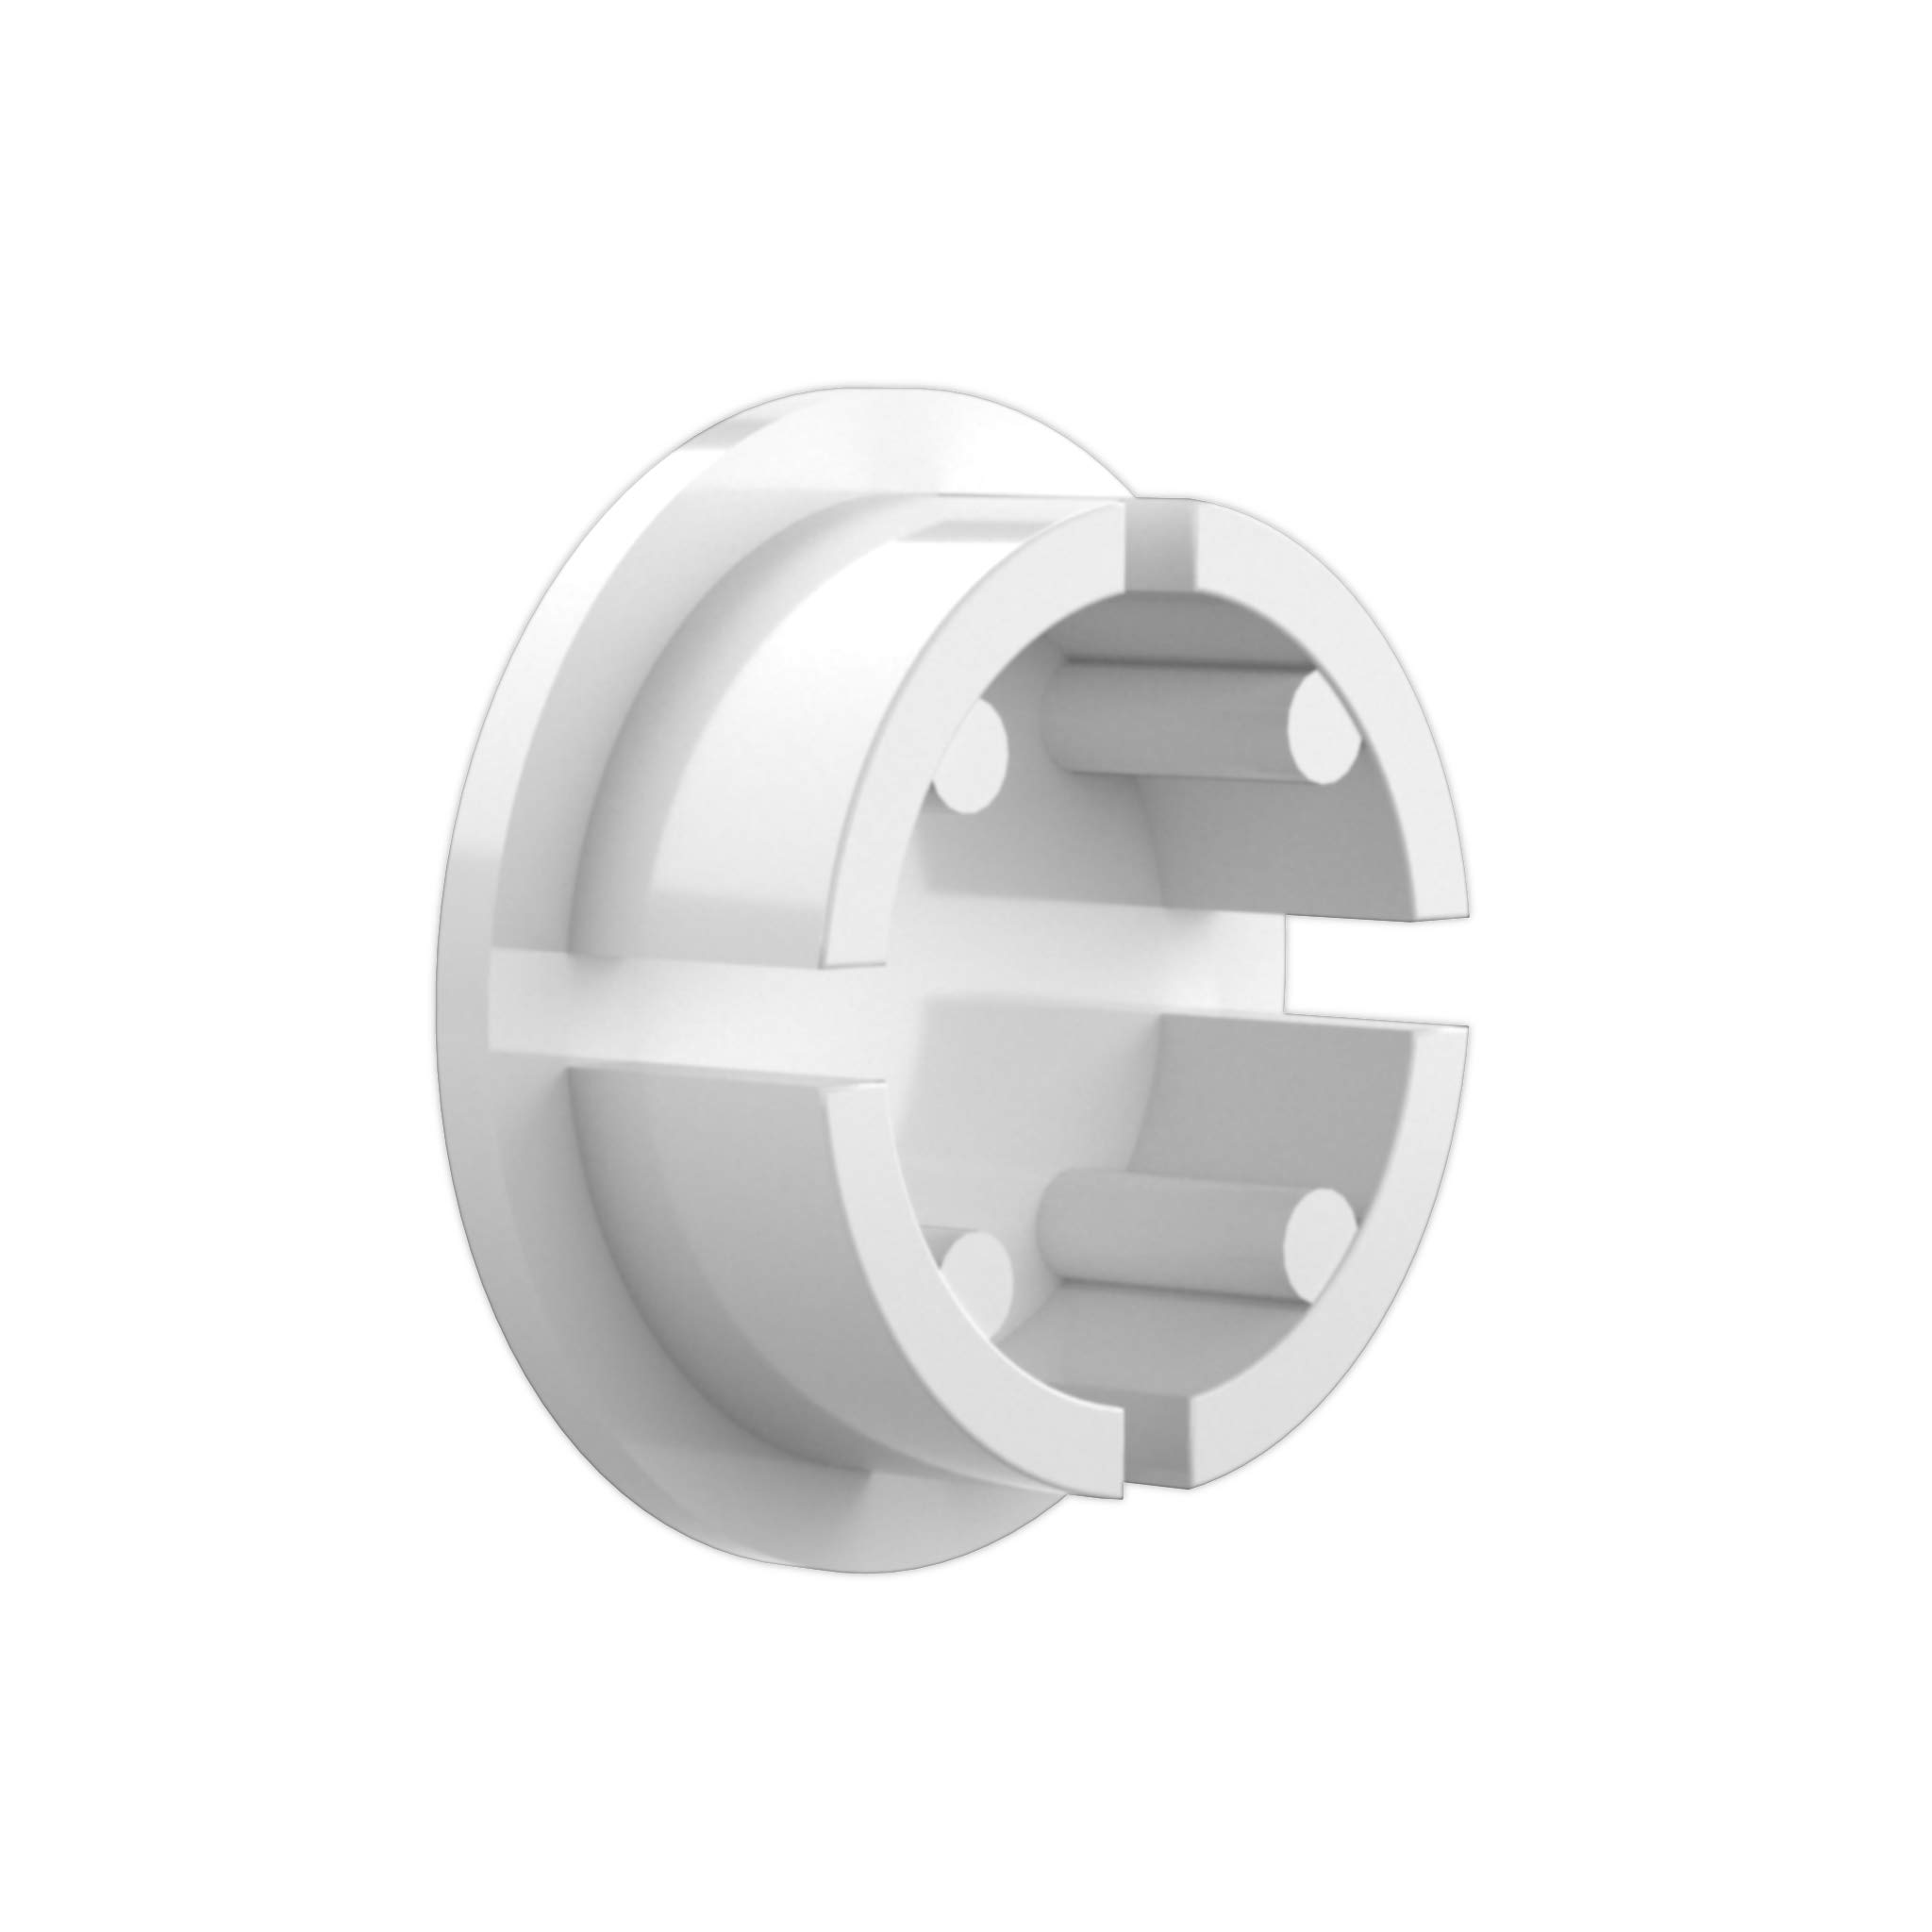 FORMUFIT F114IDC-WH-10 PVC Internal Domed End Cap, Furniture Grade, 1-1/4'' Size, White (Pack of 10) by FORMUFIT (Image #2)